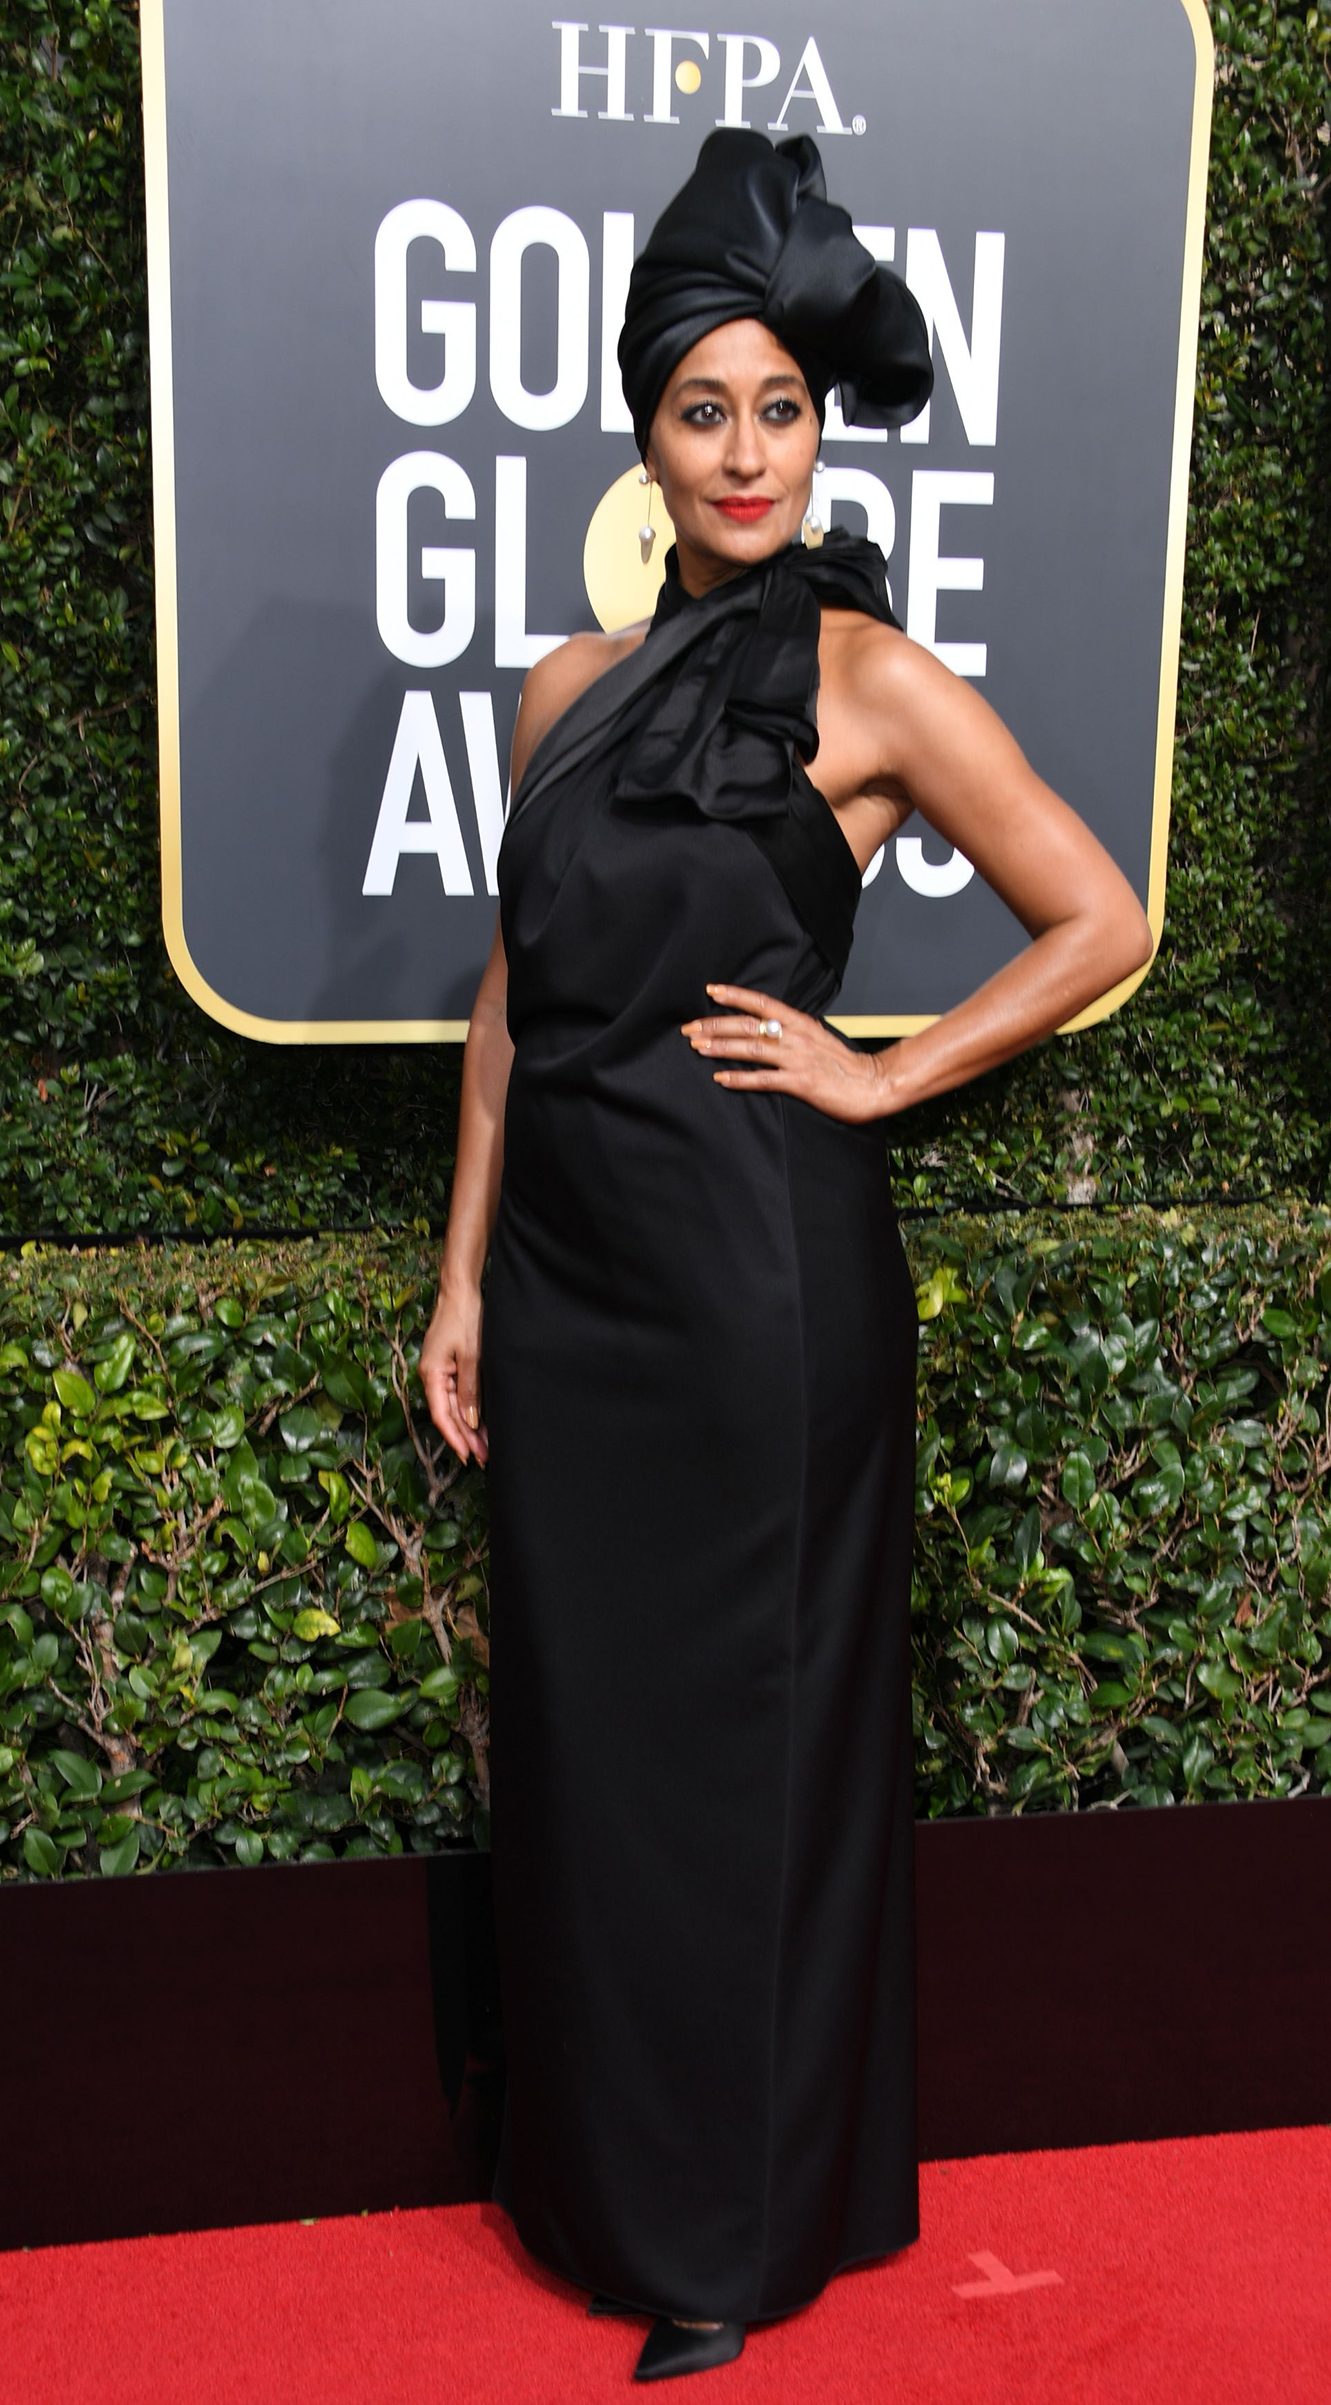 Actress Tracee Ellis Ross arrives for the 75th Golden Globe Awards on January 7, 2018, in Beverly Hills, California.